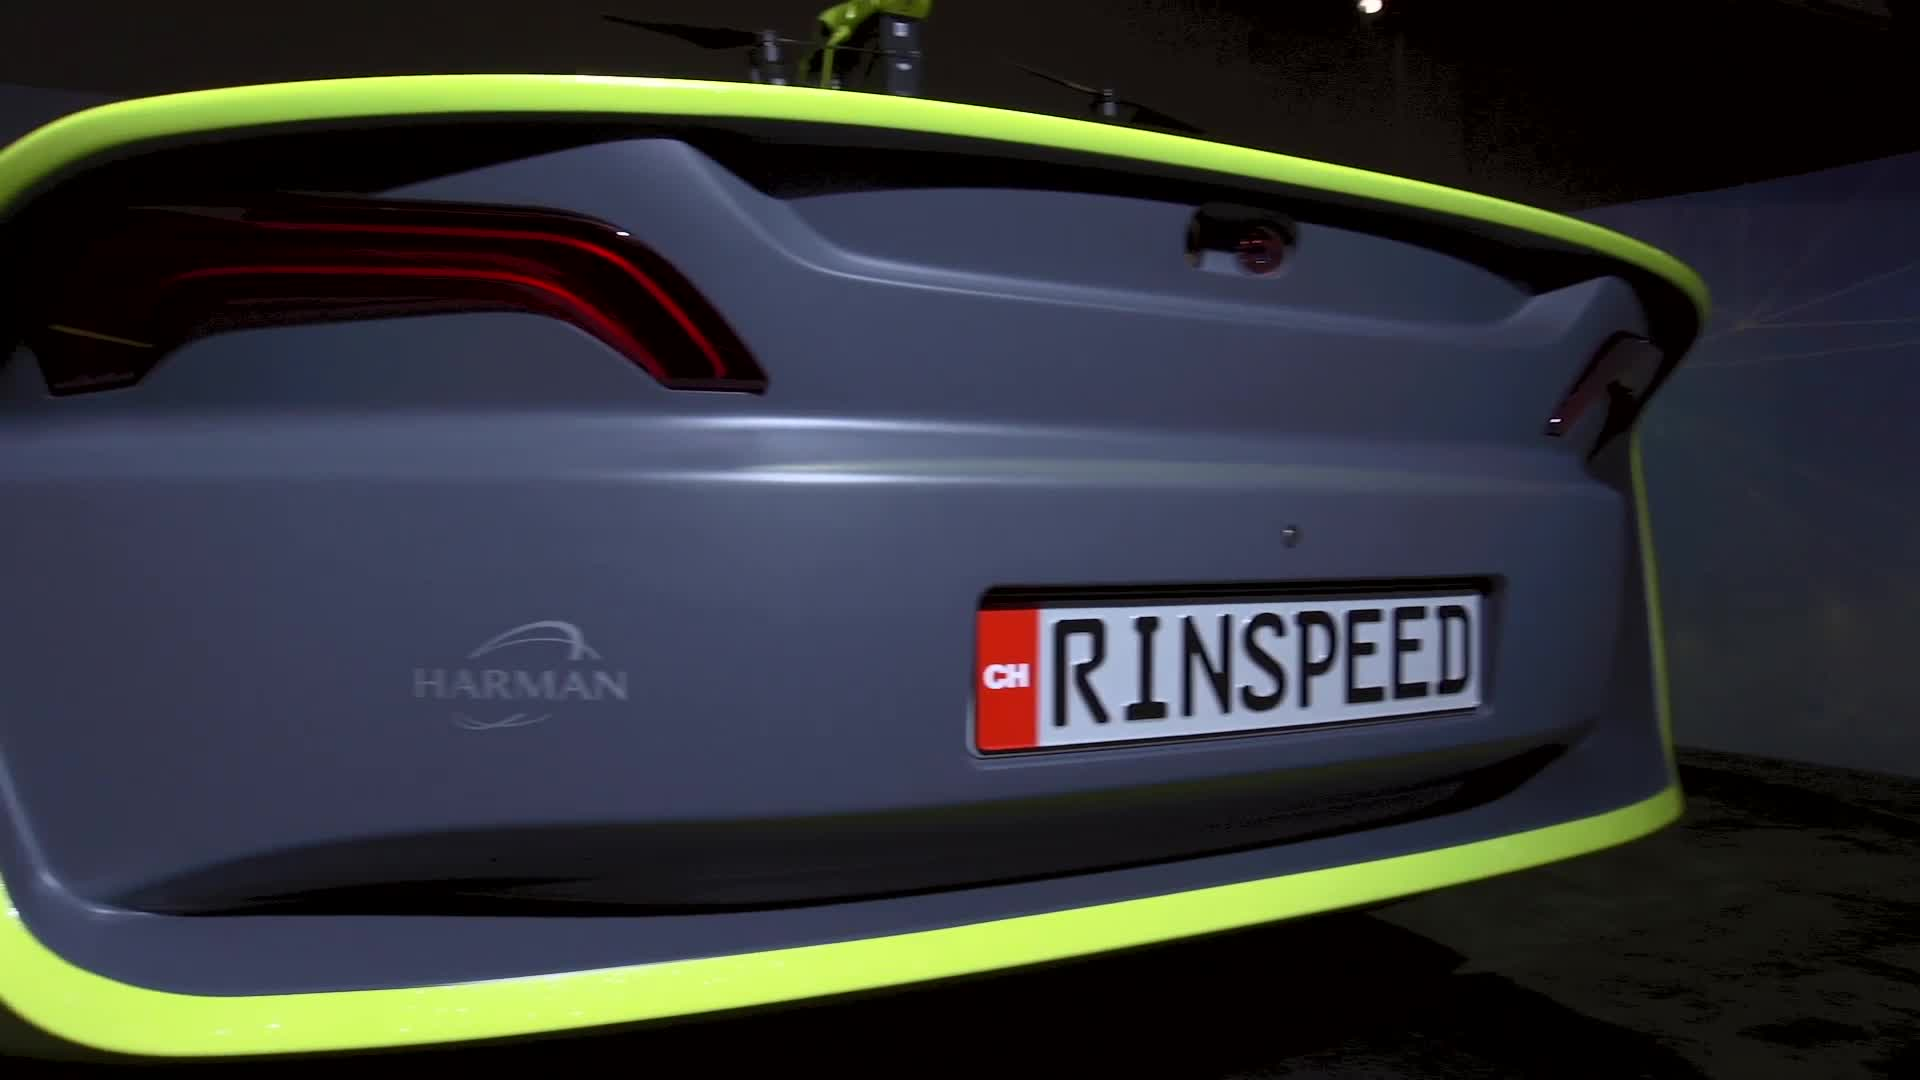 Rinspeed Auto Shows Off Car With Built-In Drone At CES 2016